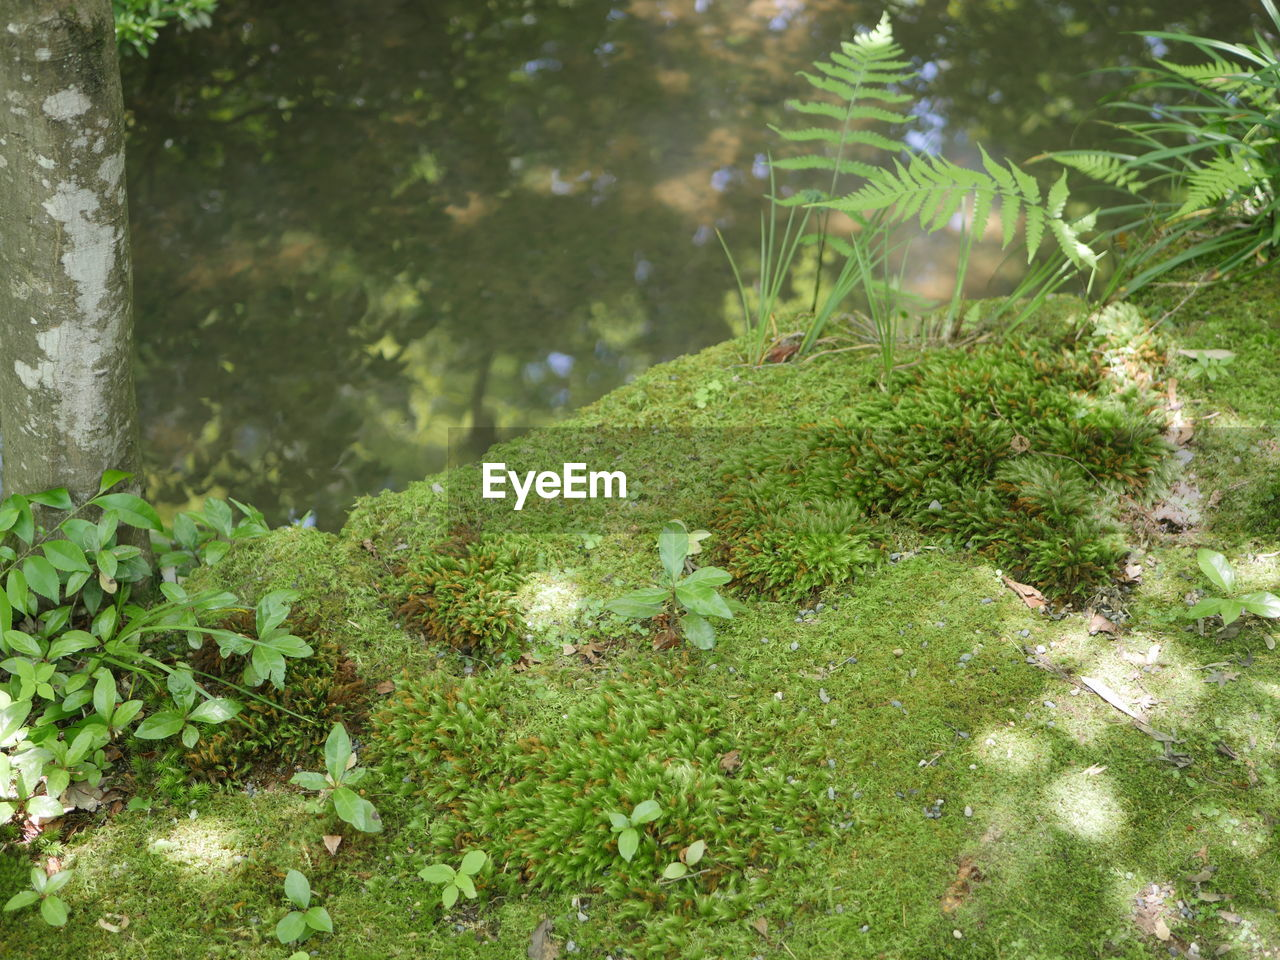 plant, growth, green color, nature, no people, day, water, tree, tranquility, beauty in nature, focus on foreground, moss, outdoors, selective focus, close-up, leaf, land, plant part, grass